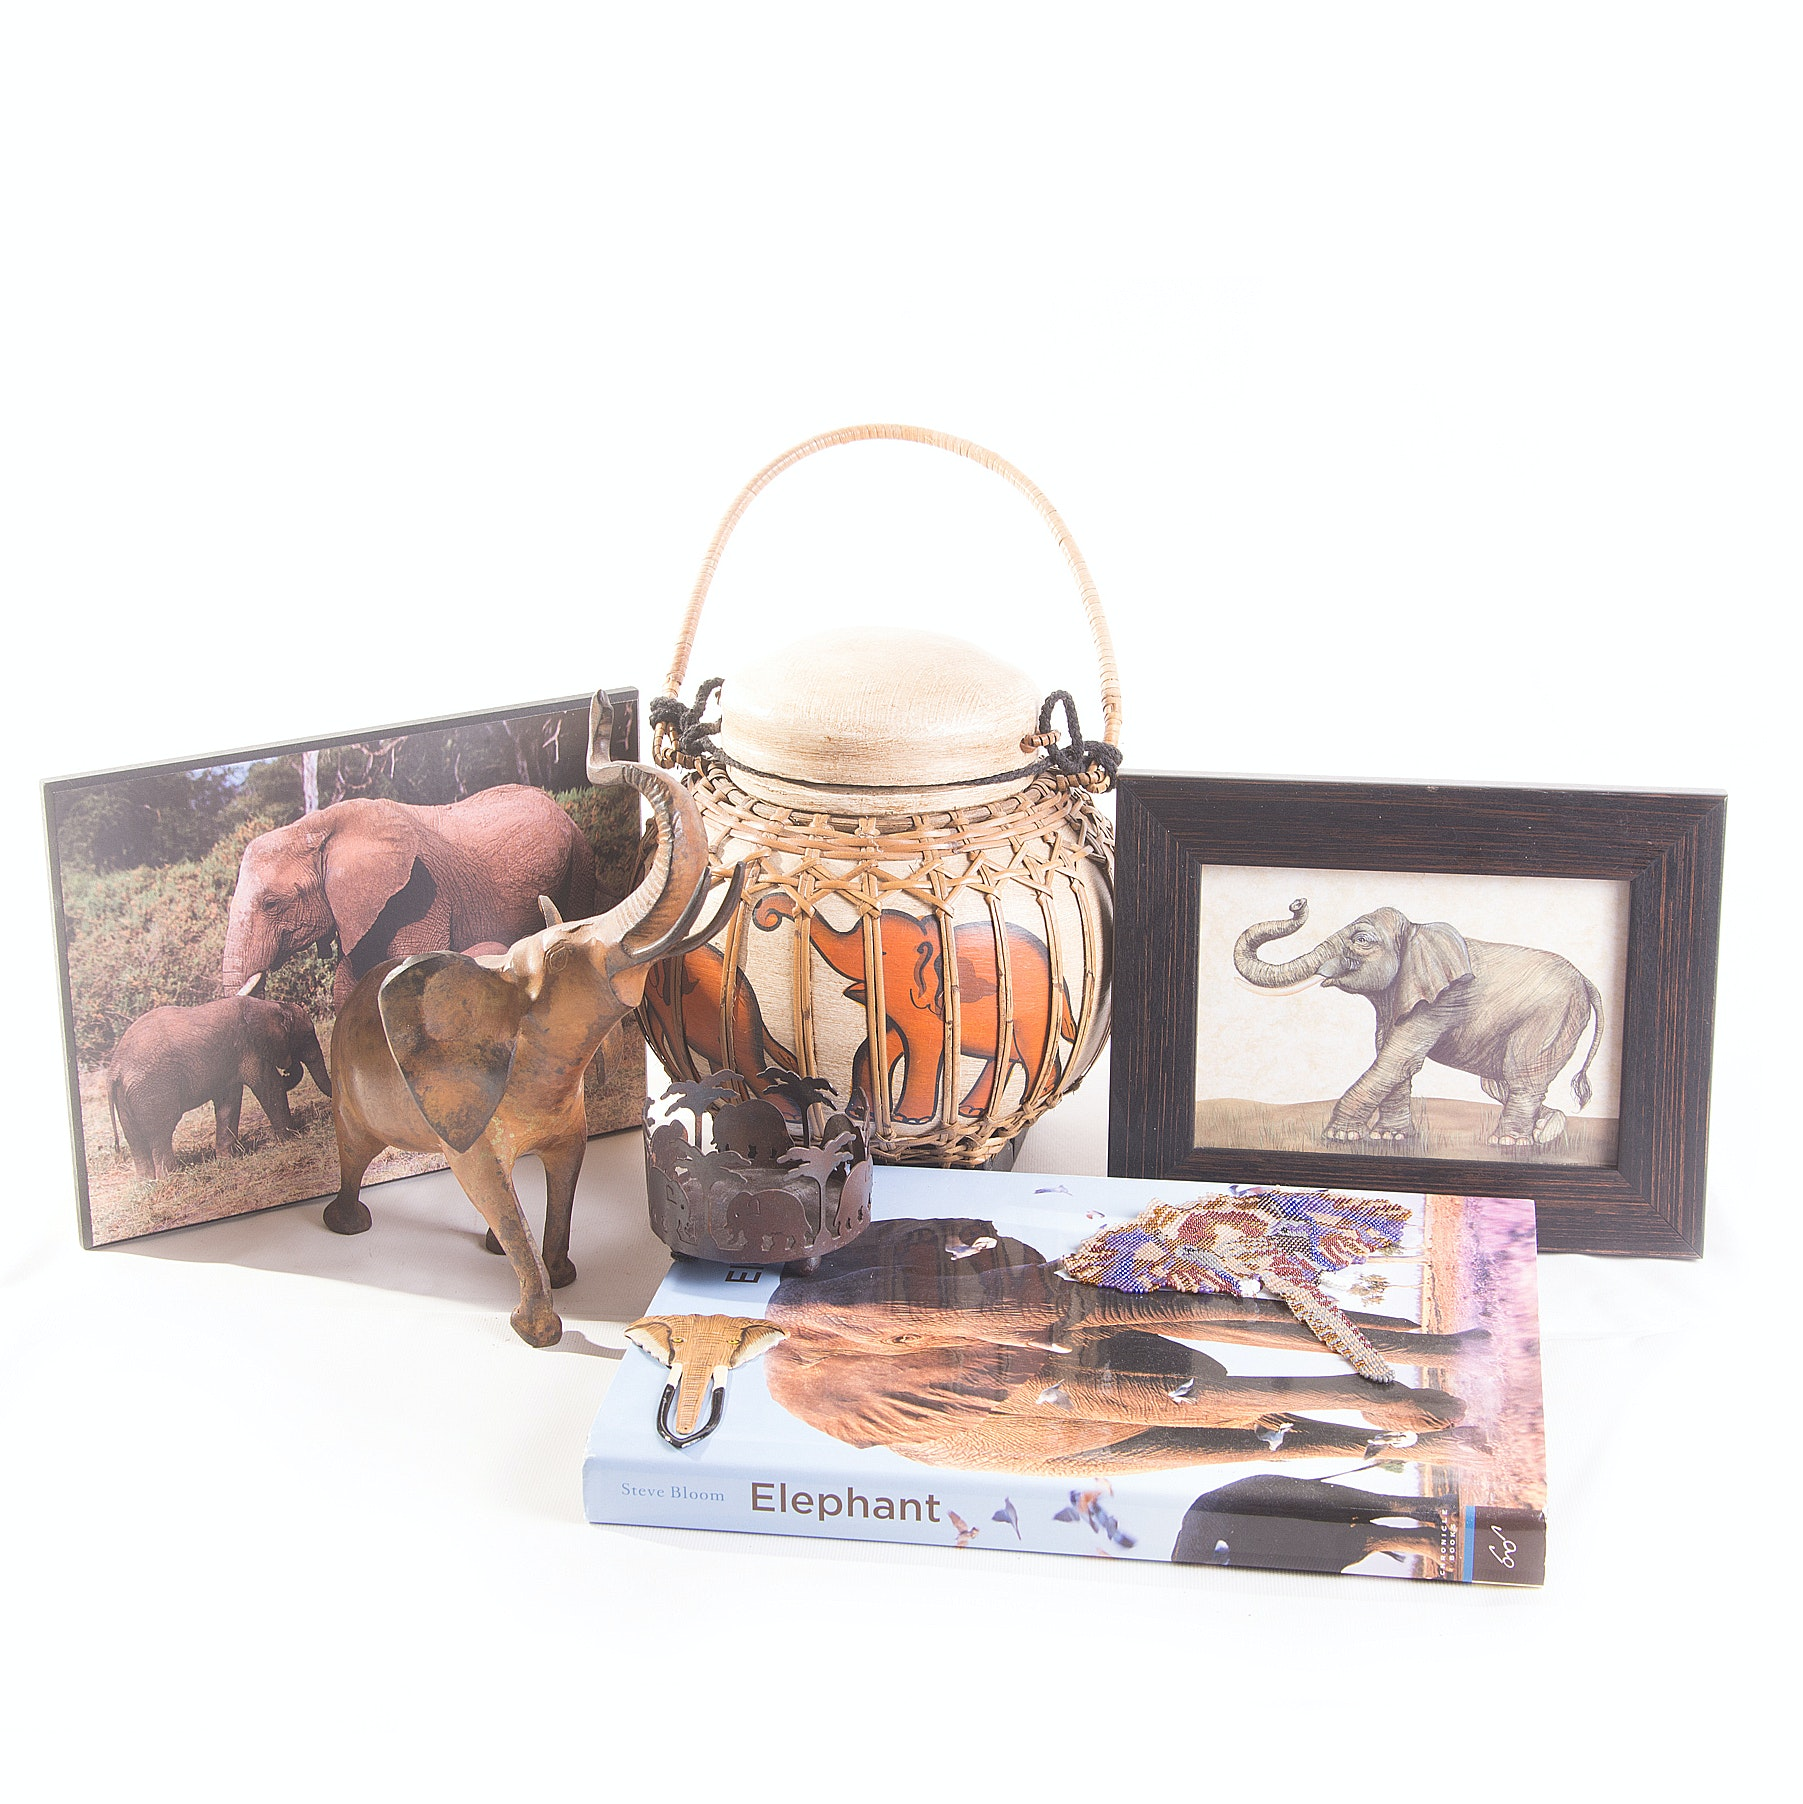 Assortment of Elephant Figurines and Accessories